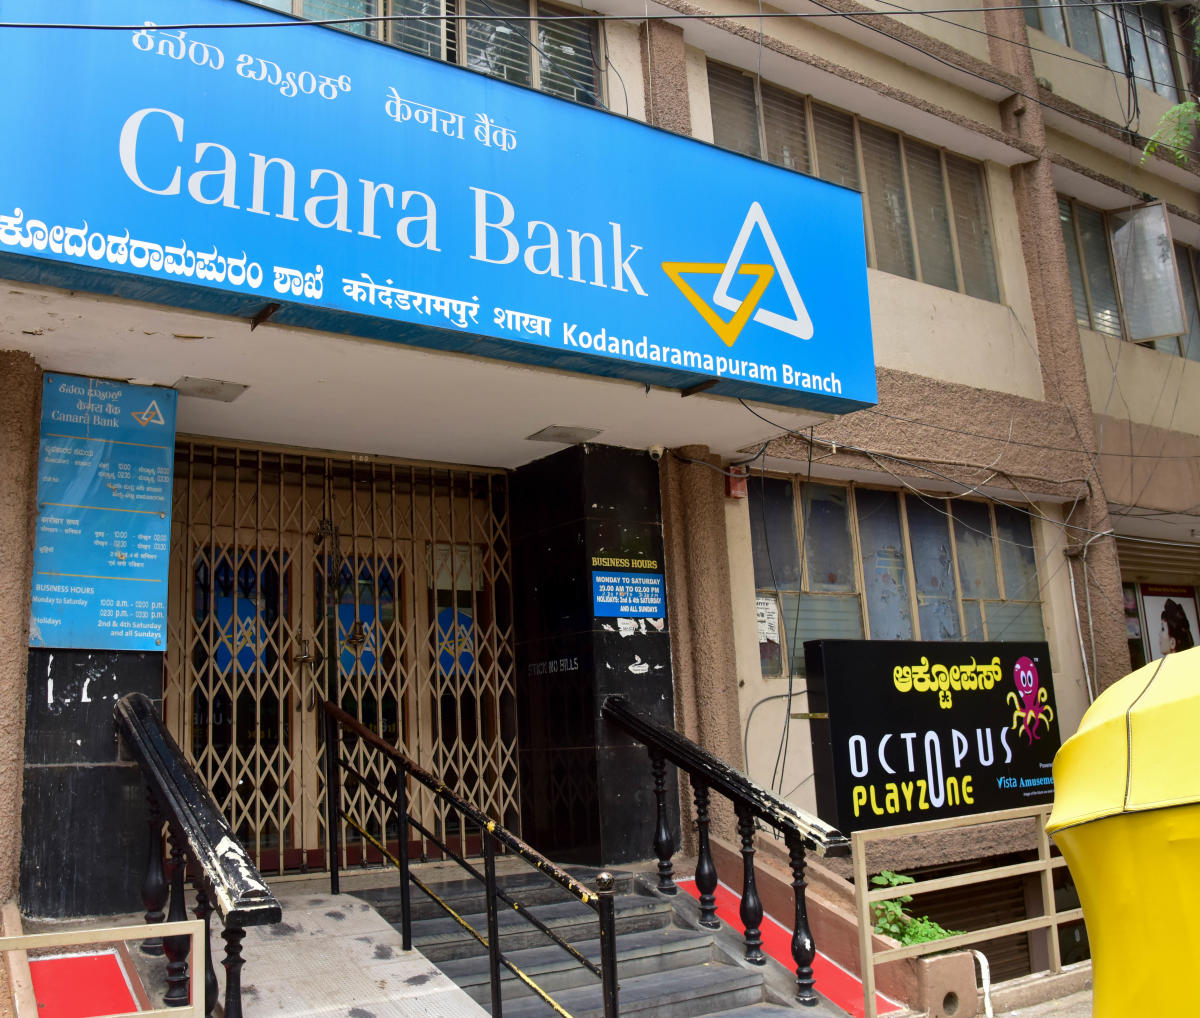 Canara Bank reduces interest rates on loans, with loans available